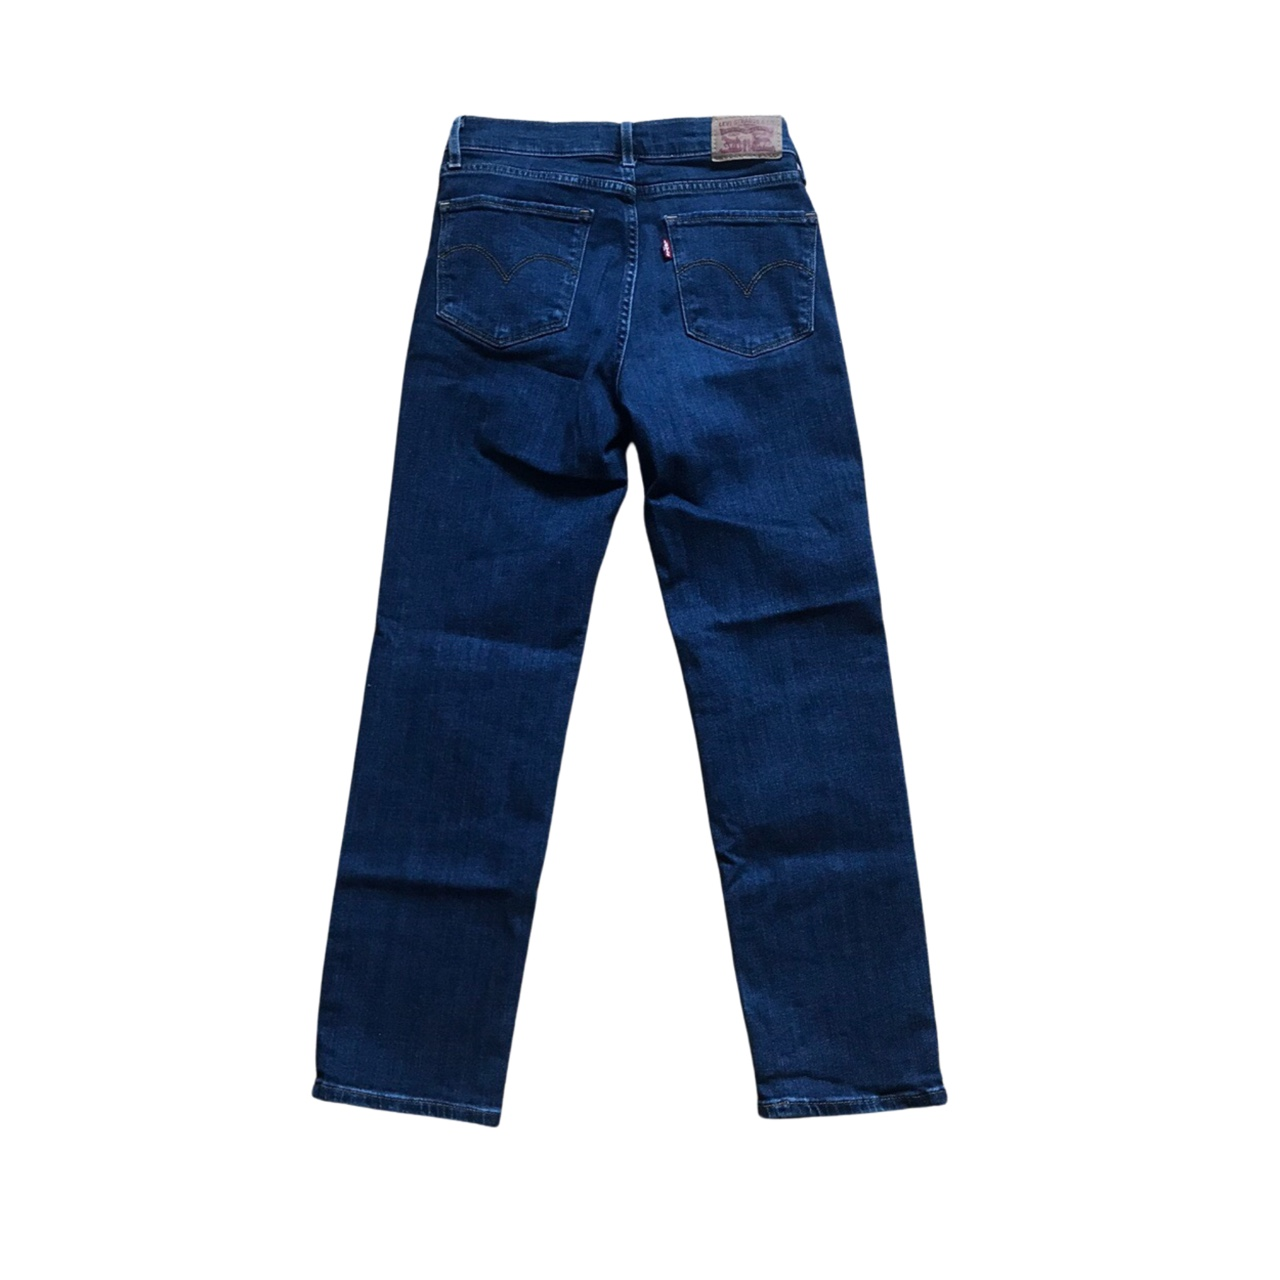 Product Image 1 - Levi's 724 High Rise Straight